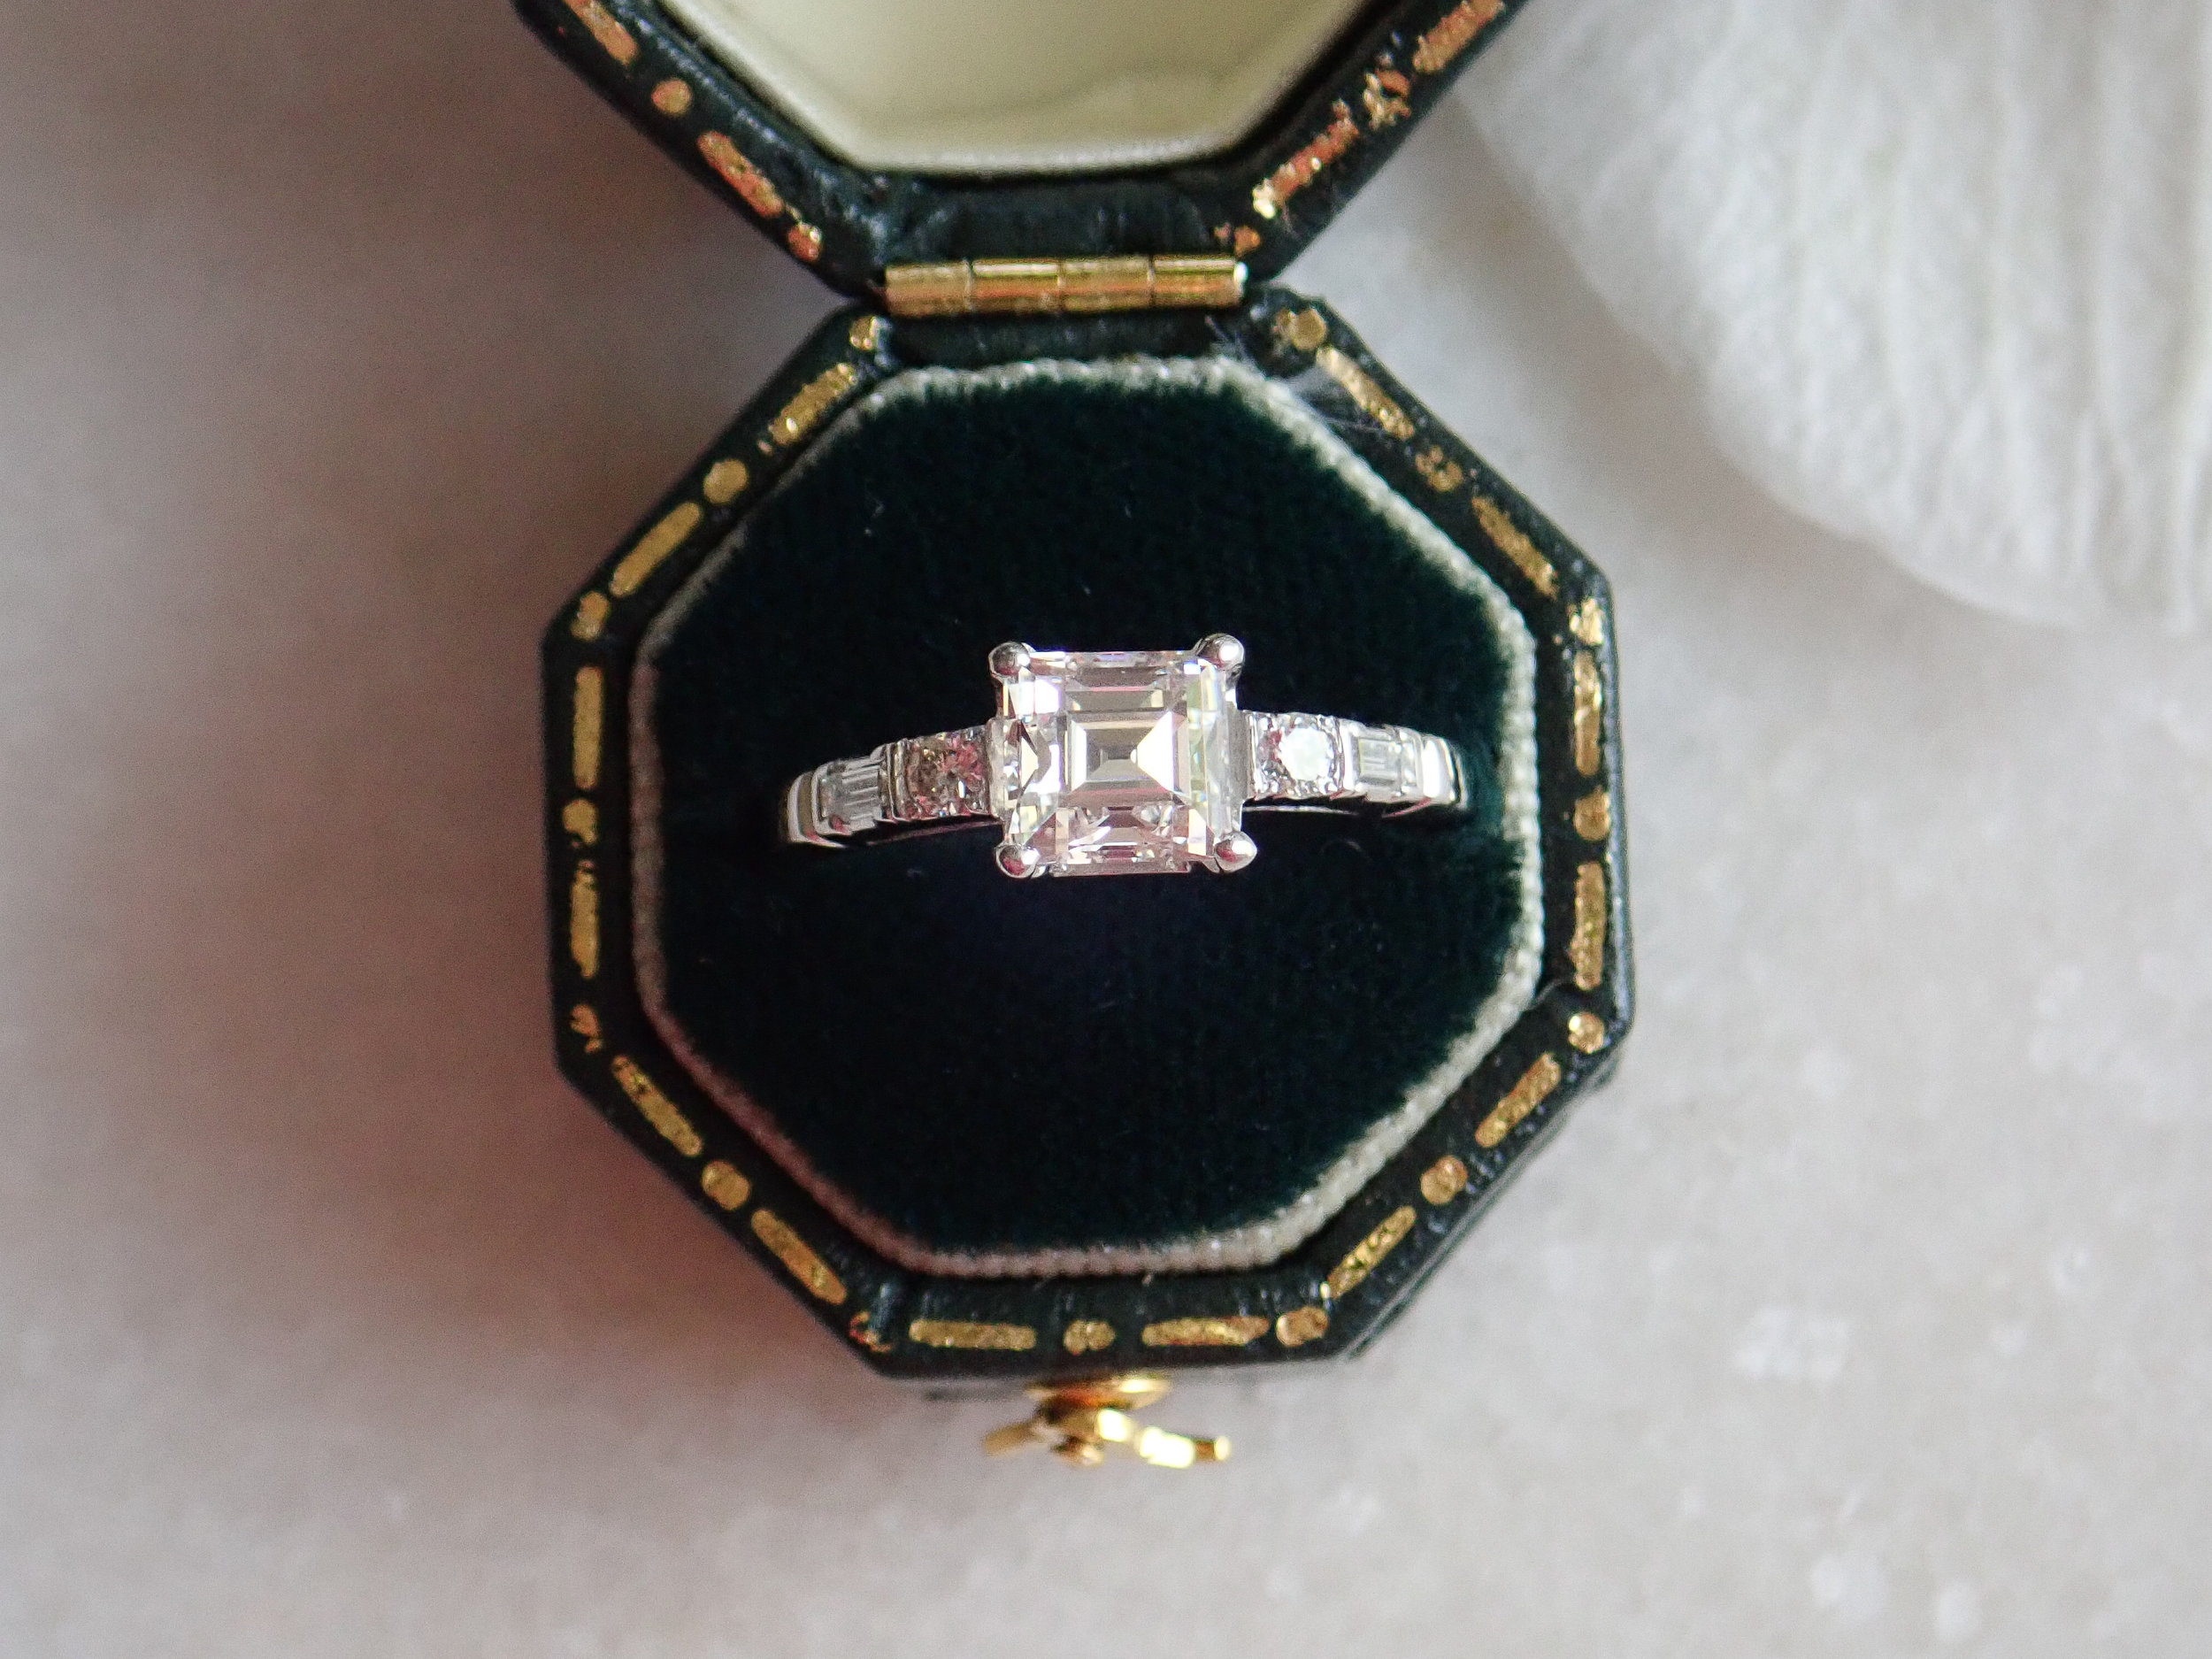 Once you've approved the design and wax model, - I work with my talented master craftsmen to create your new one-of-a-kind engagement ring. Every intricate detail is meticulously crafted for quality that will last generations. Then comes my favorite part — presenting you with your new jewelry! I absolutely love bringing your vision to life.